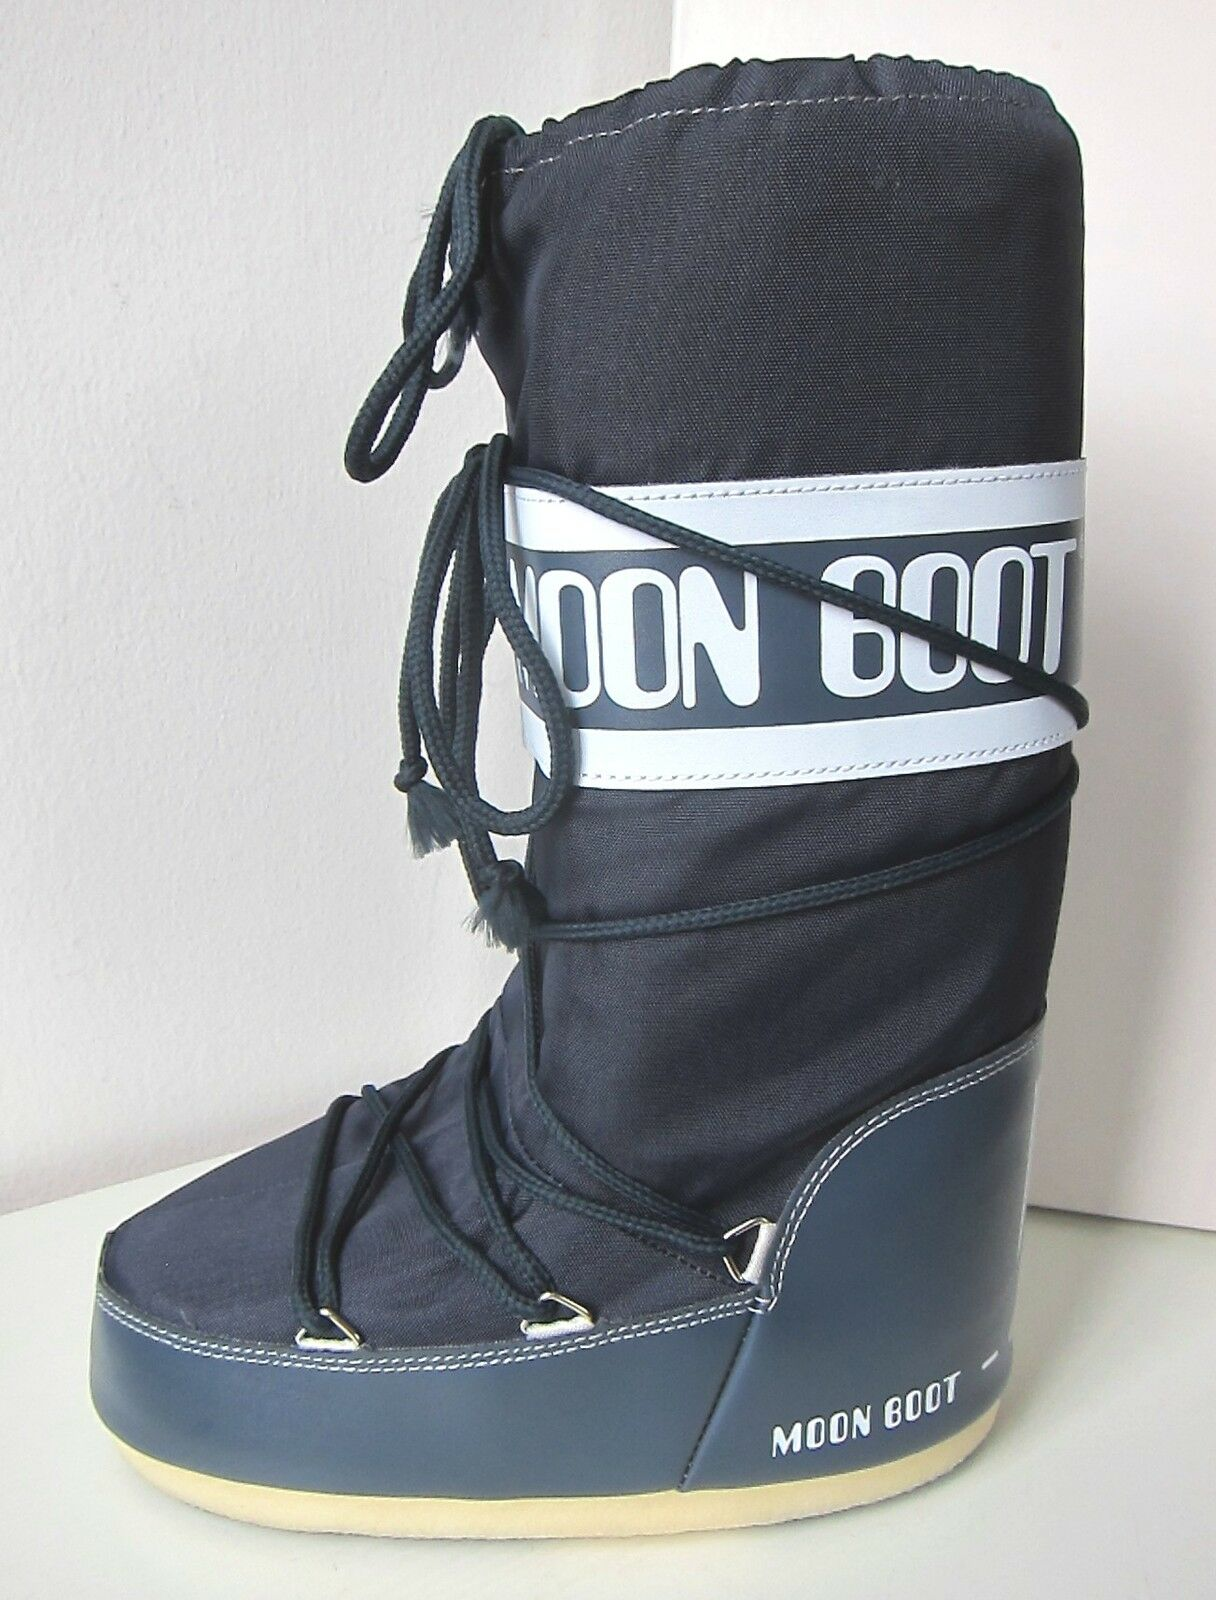 Tecnica MOON BOOT Nylon jeans blau Gr. 31 - Moonboots 34  Moon Boots Moonboots - denim blue 0d8c13